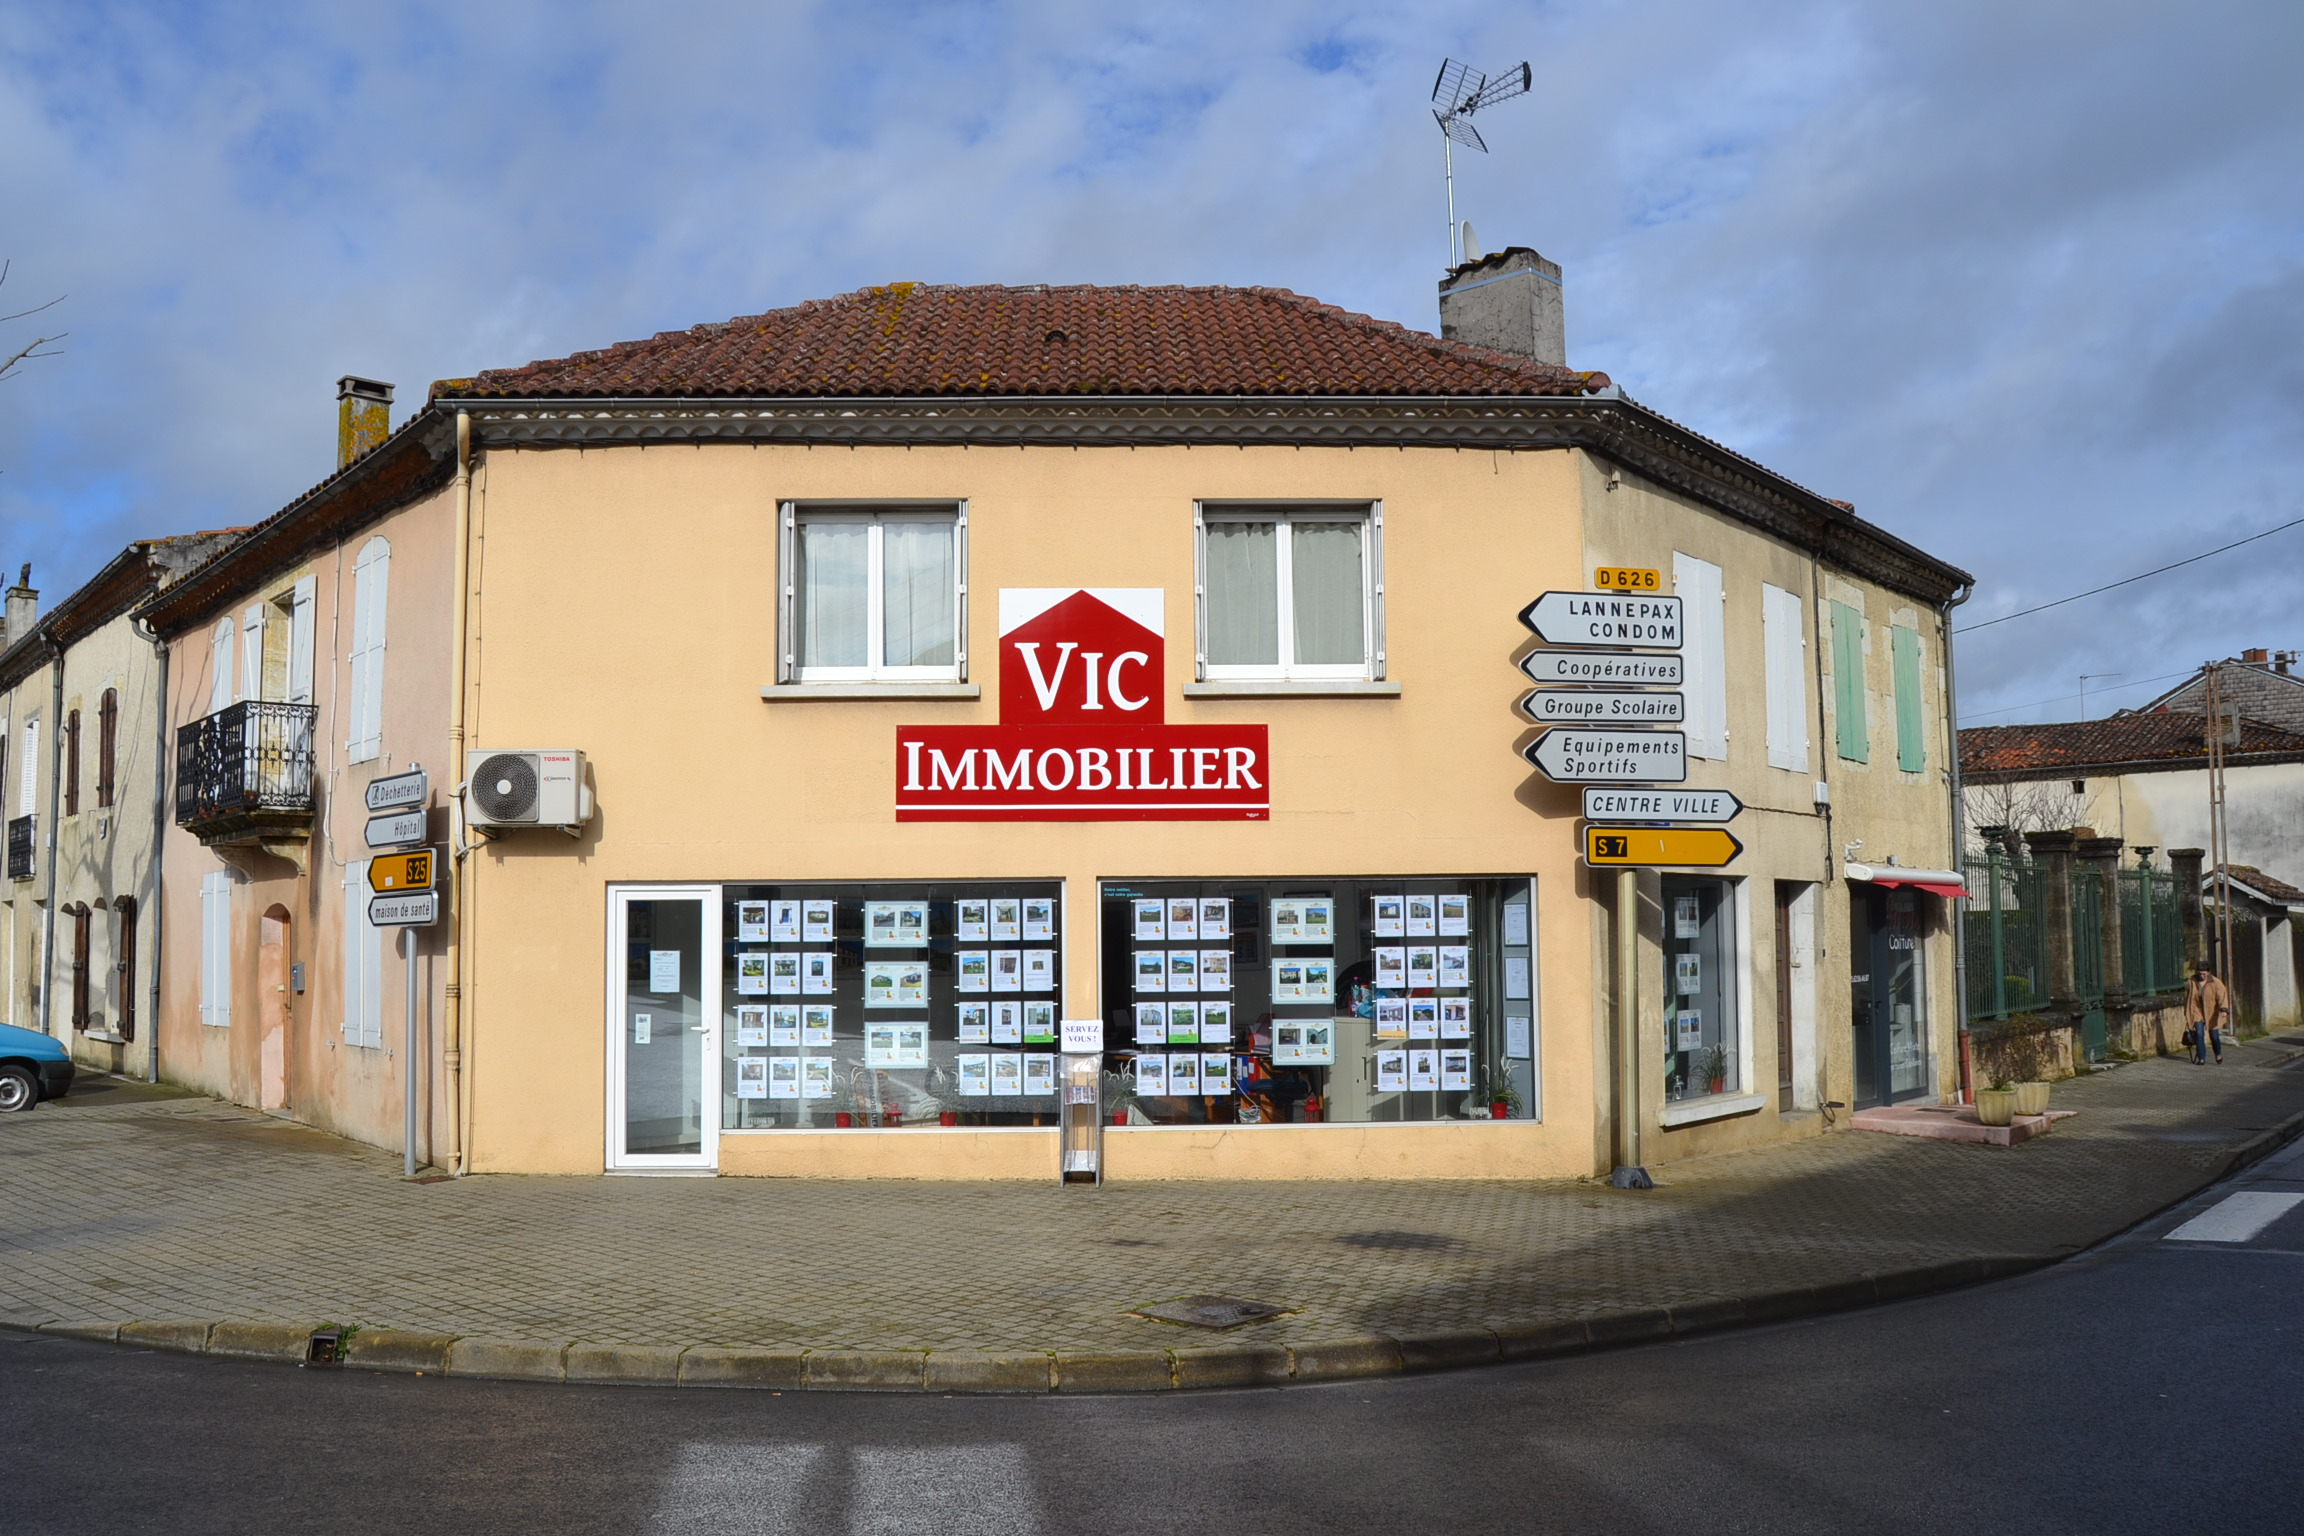 6 Agence vic immobilier.jpg